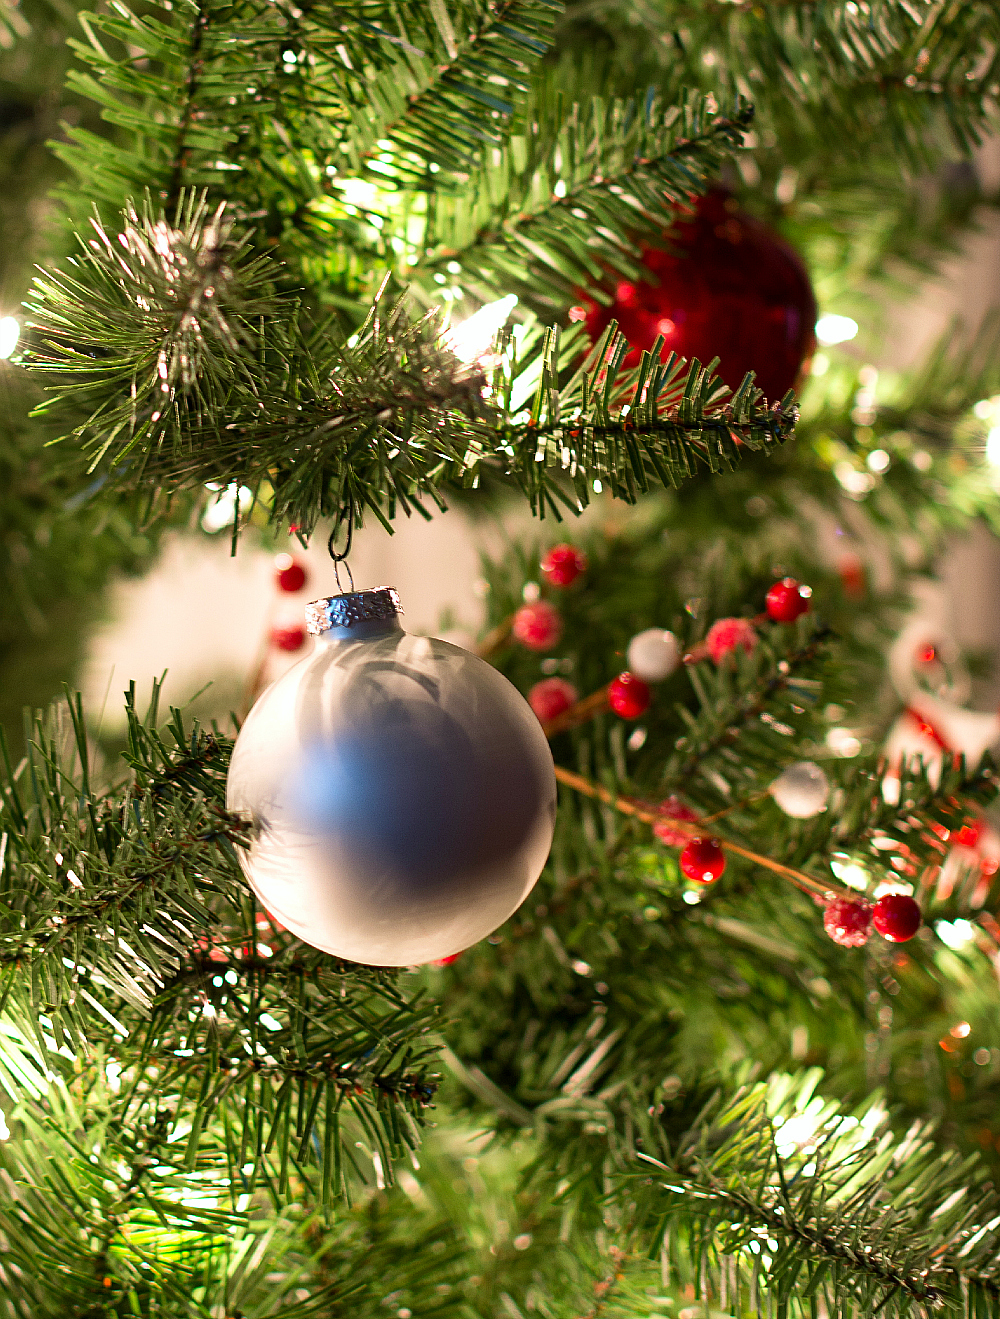 Christmas-Tree-Red-White-Ornaments (11 of 17)